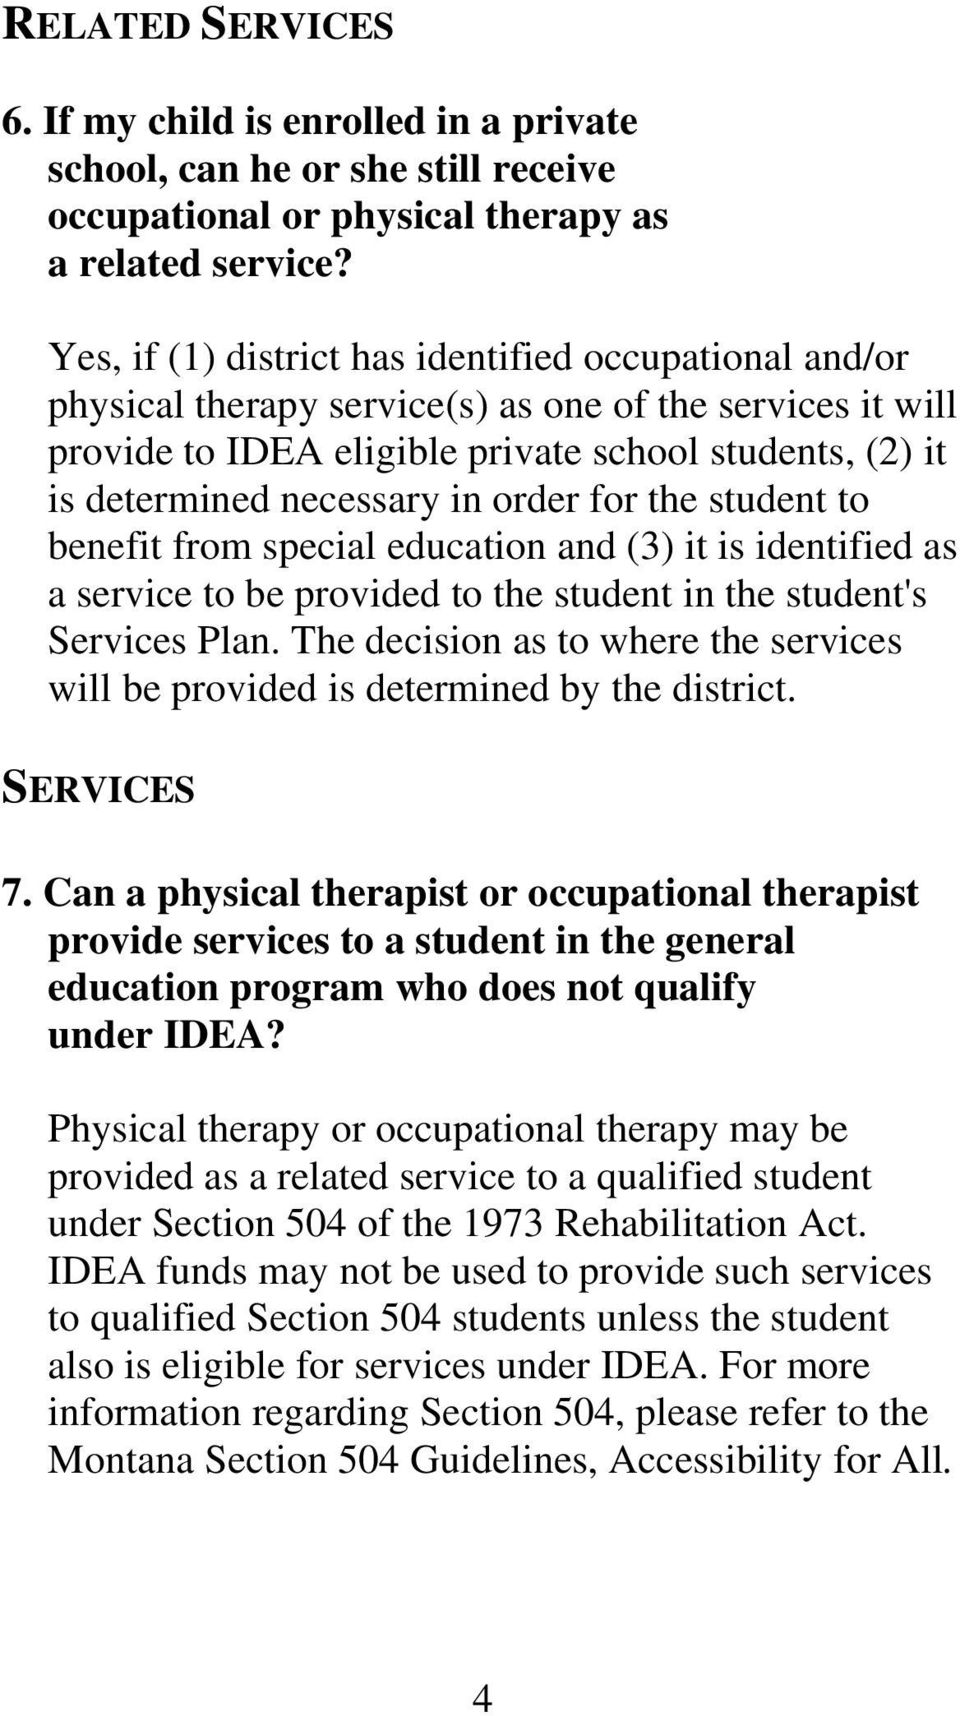 order for the student to benefit from special education and (3) it is identified as a service to be provided to the student in the student's Services Plan.